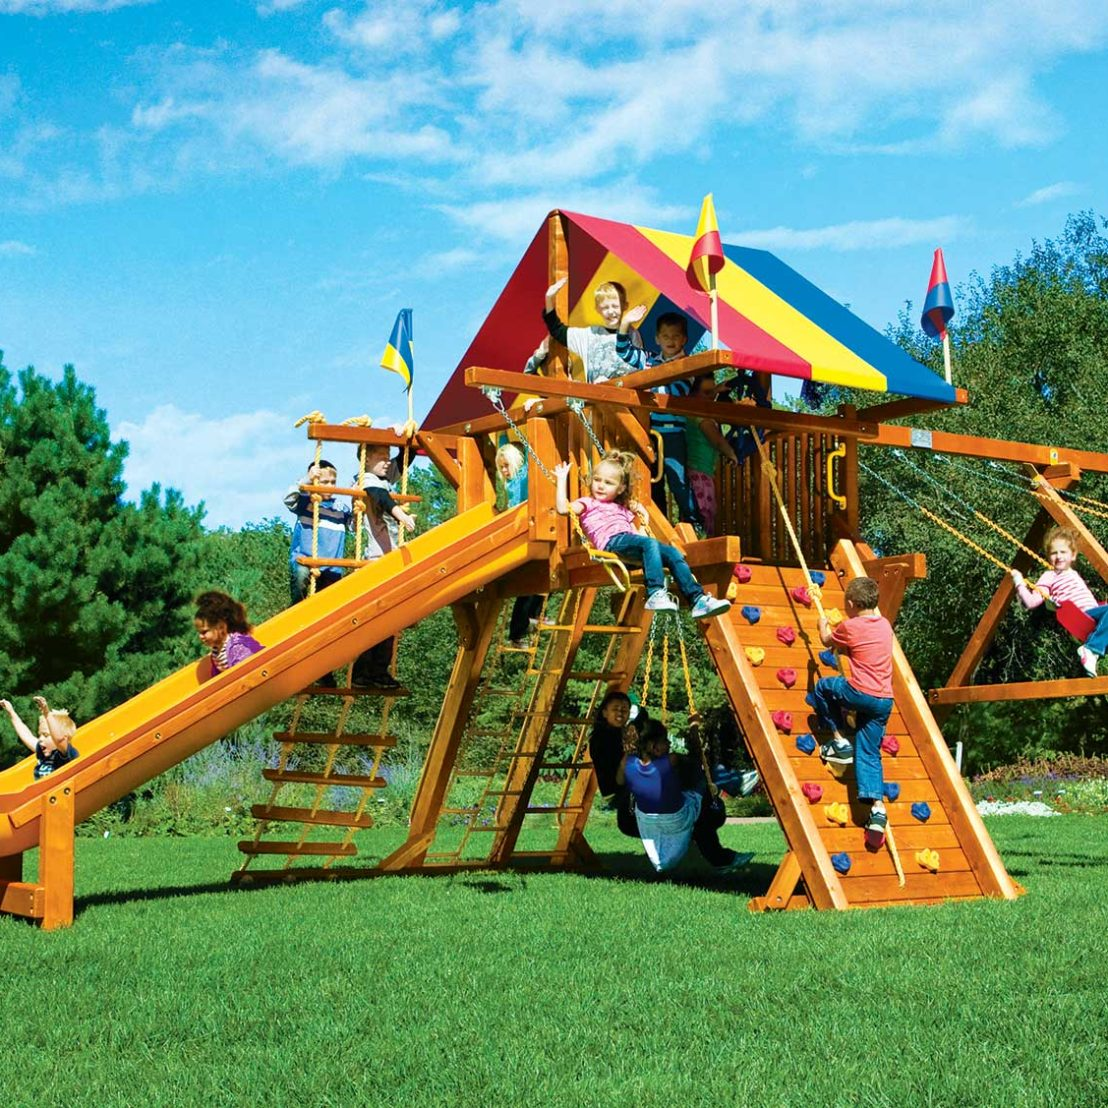 Rainbow Super Turbo Castle Pkg II Wooden Swing Set